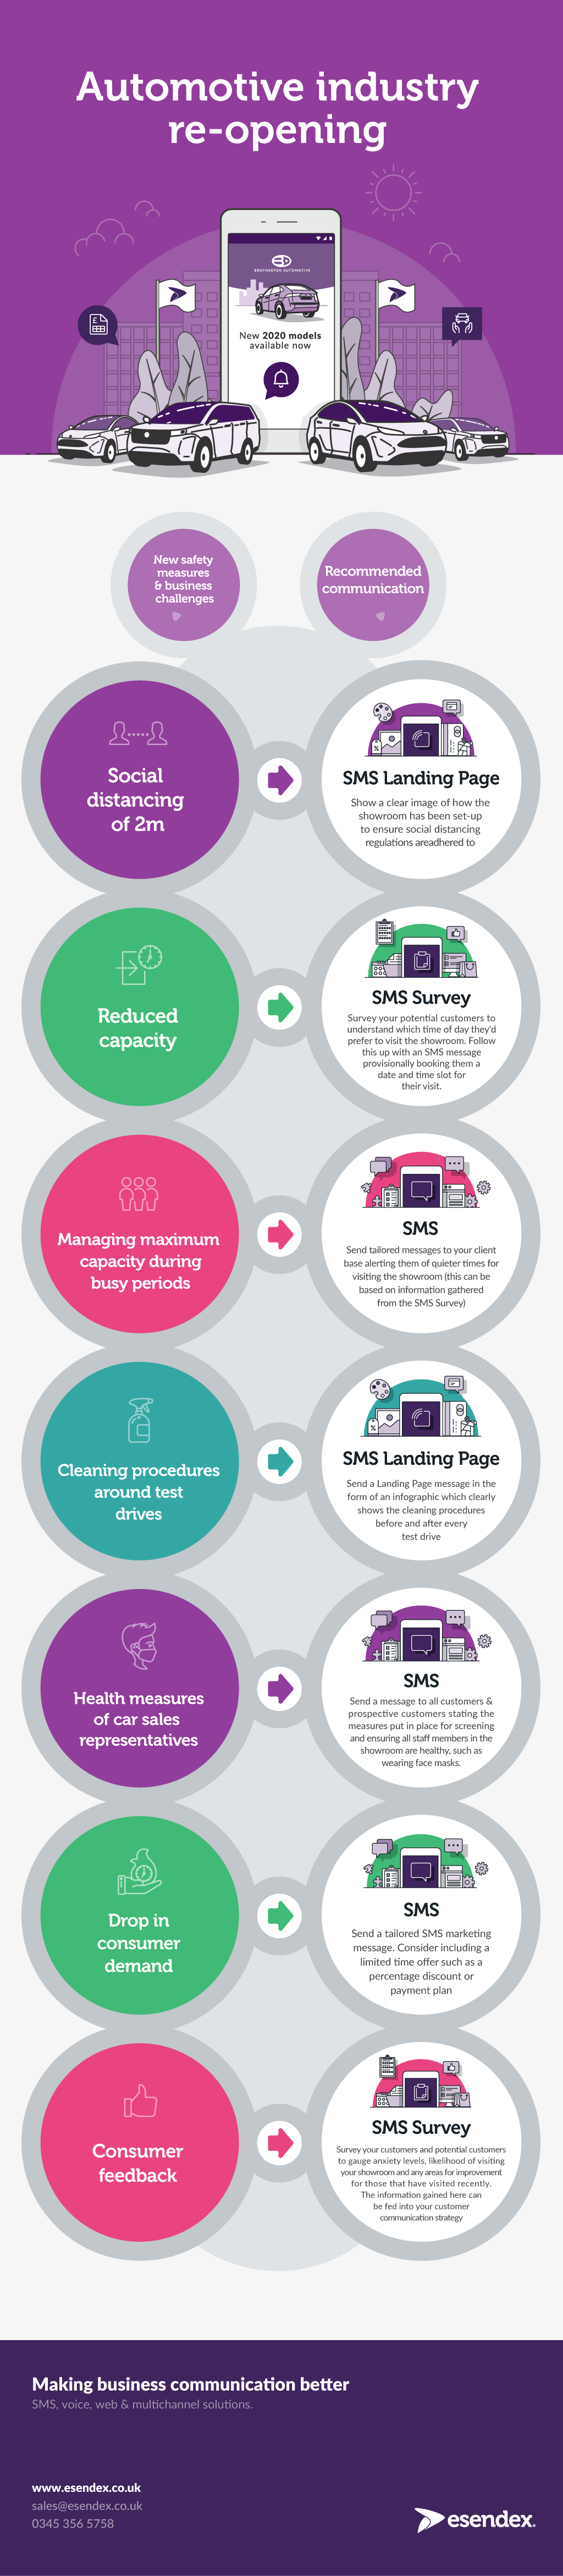 Infographic showing how automotive businesses can communicate with their customers post-COVID19